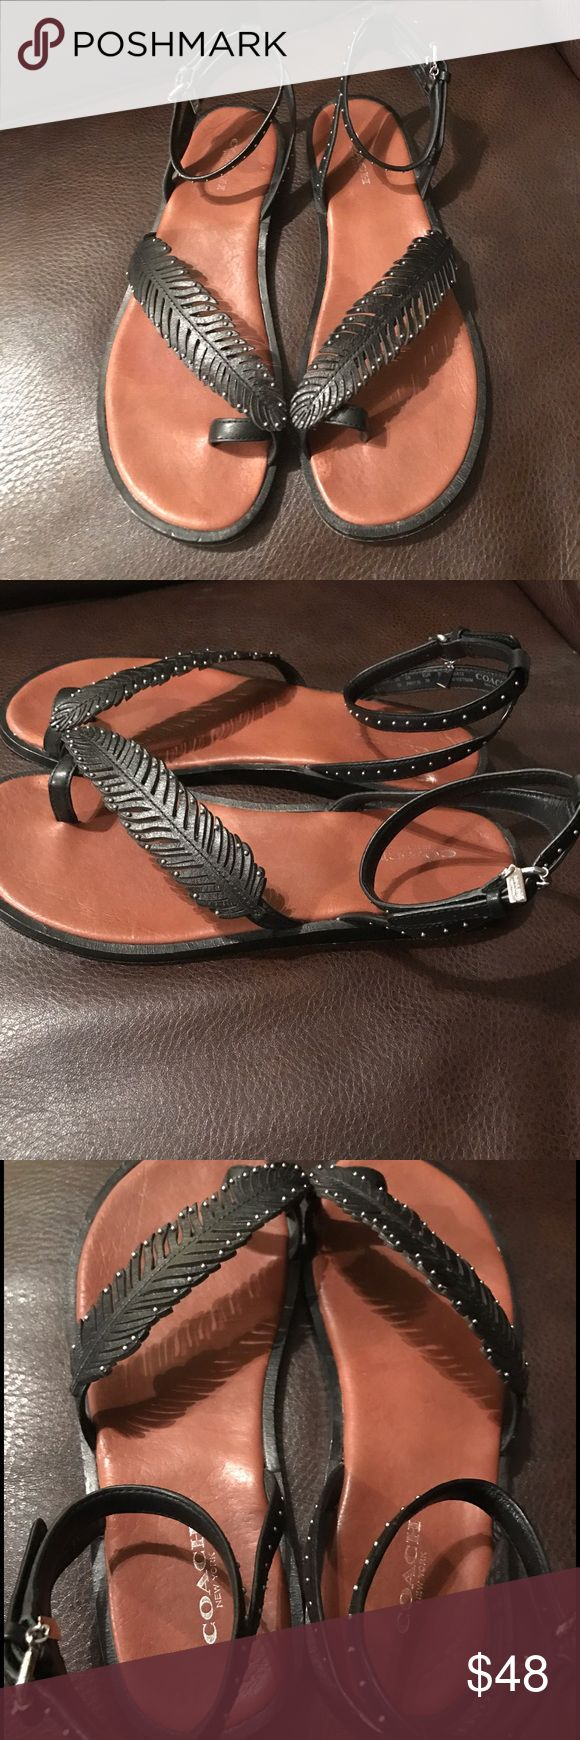 coach sandals these are in great condition hardly worn at all tags born